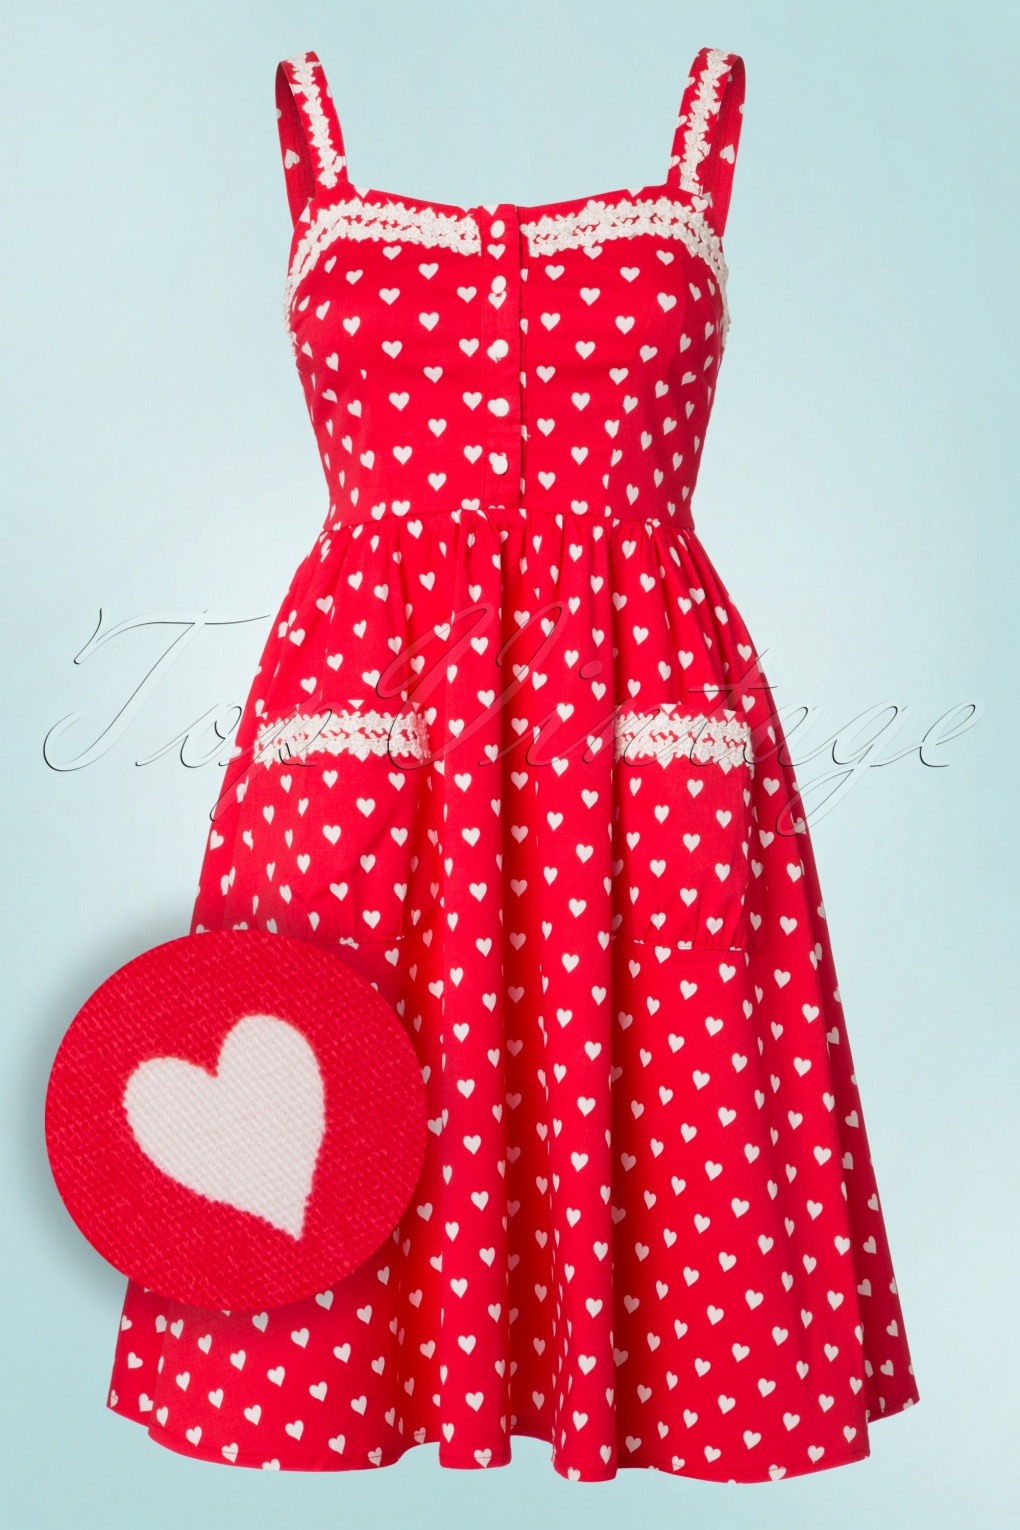 Vintage Inspired Clothing Stores 50s Corinna Polkadot Swing Dress in Bright Red £48.25 AT vintagedancer.com